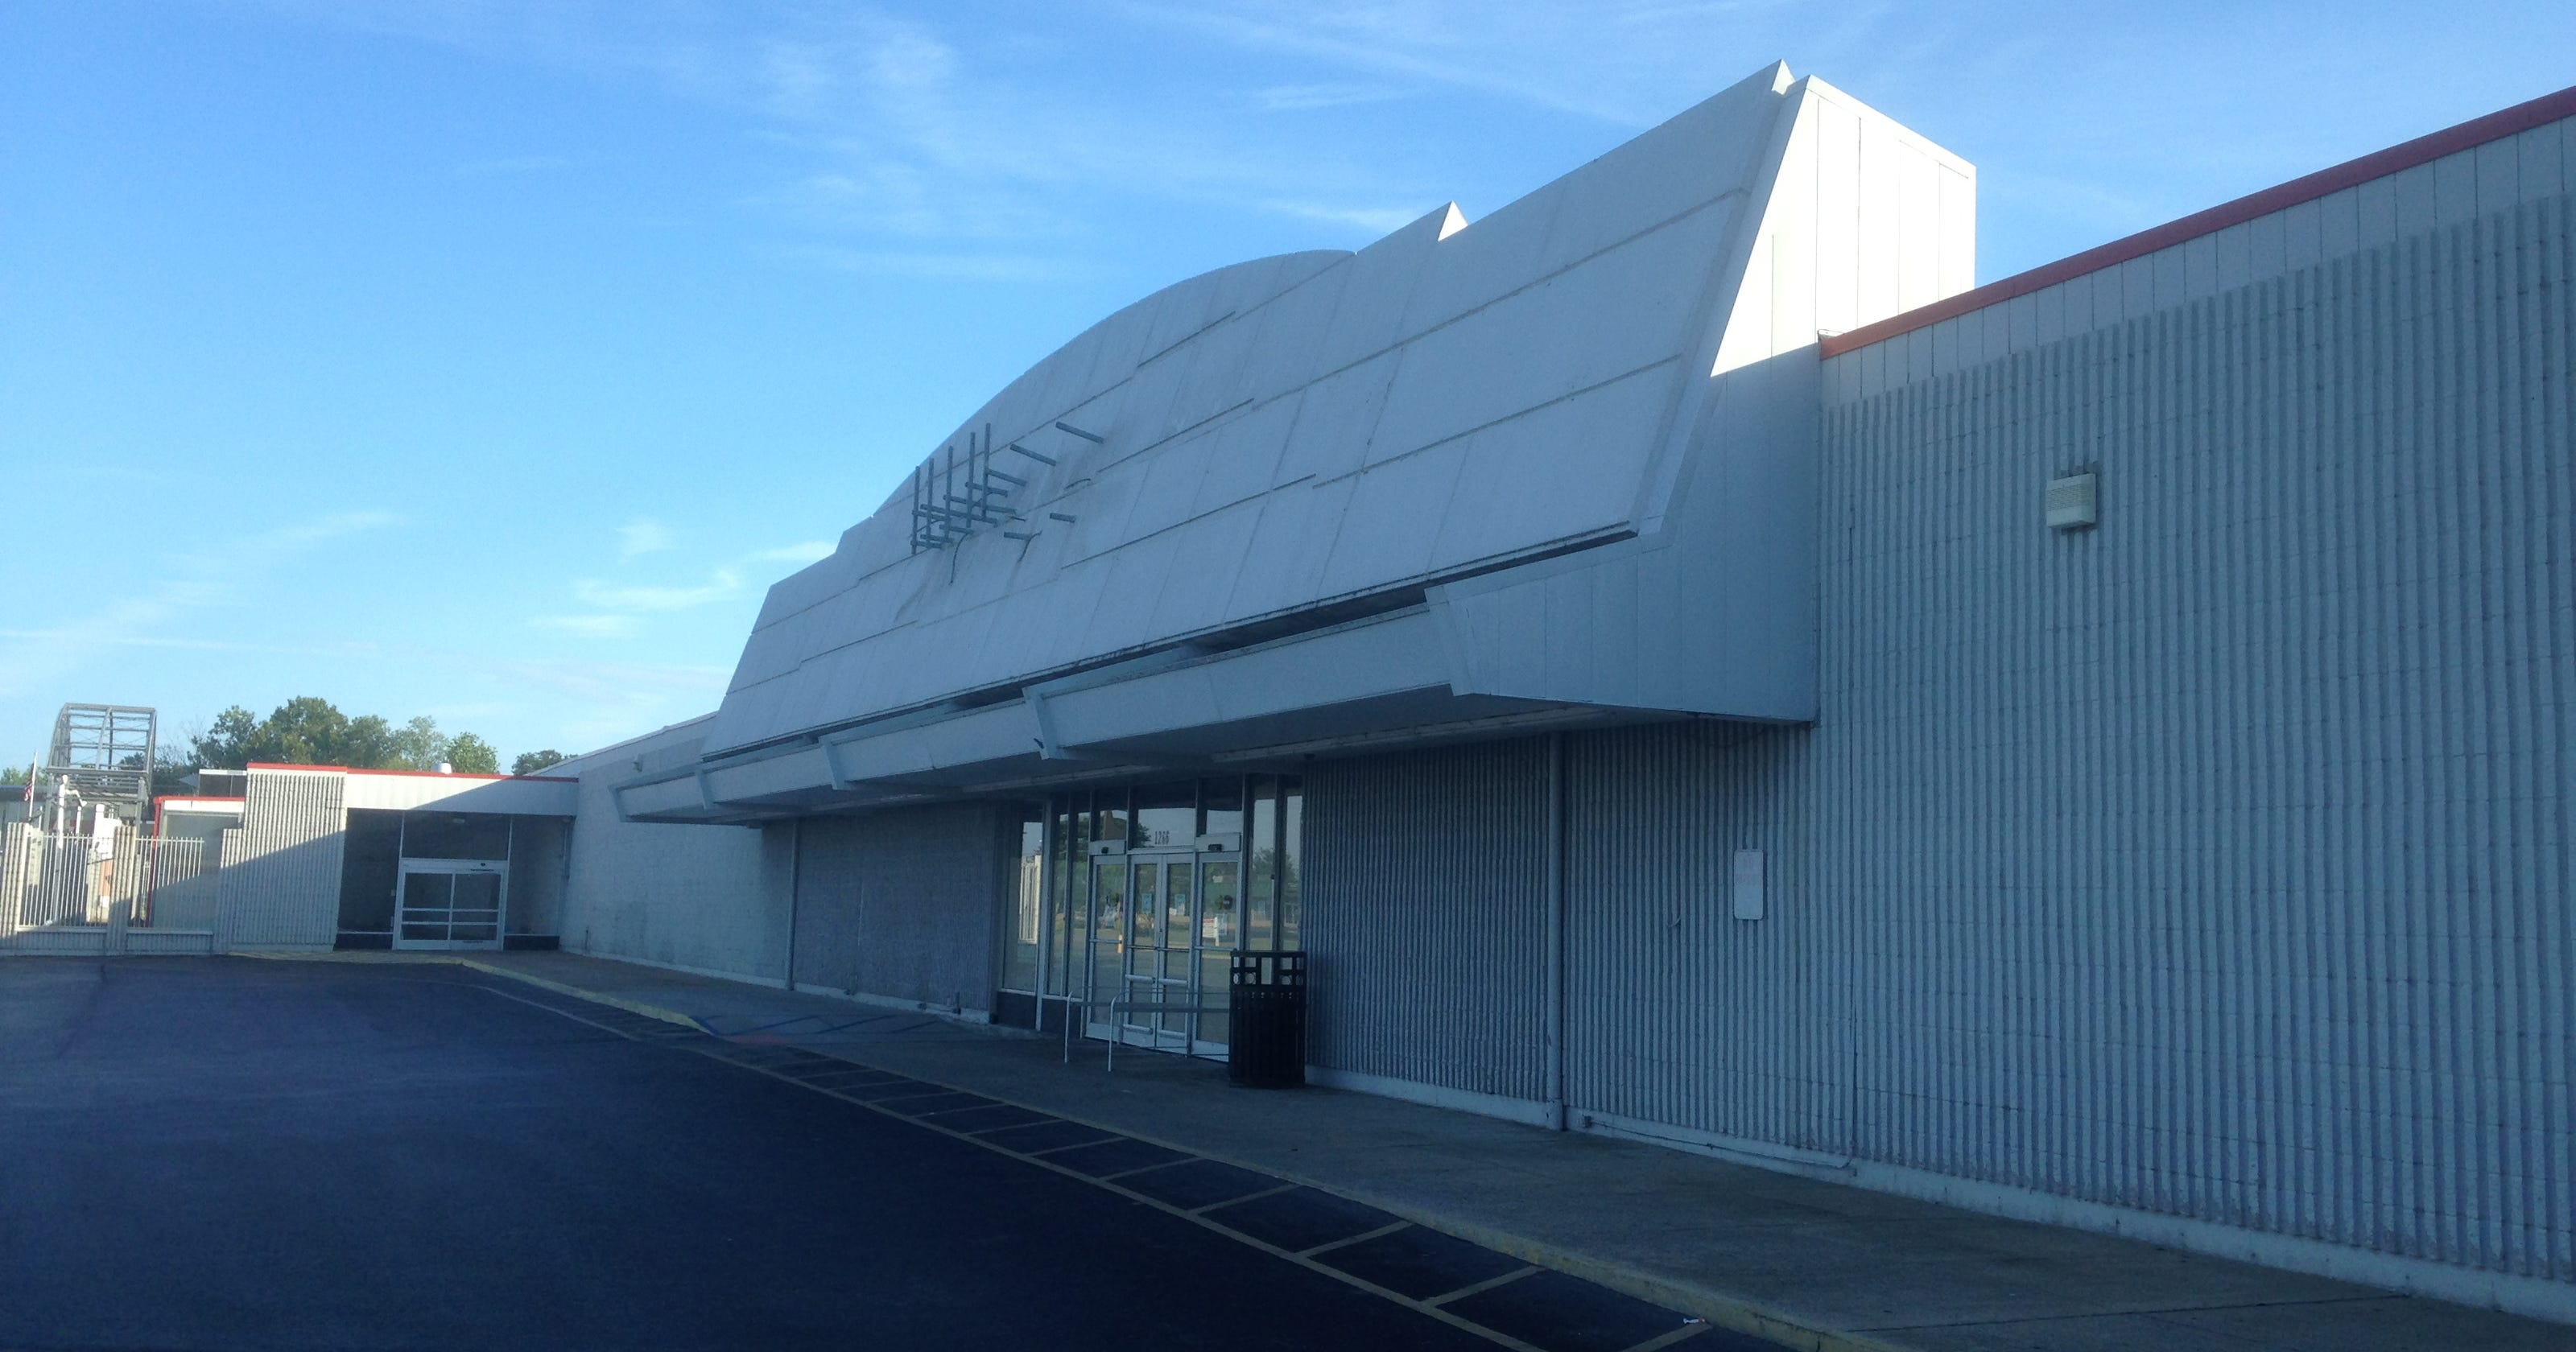 Big Lots to move into old Kmart